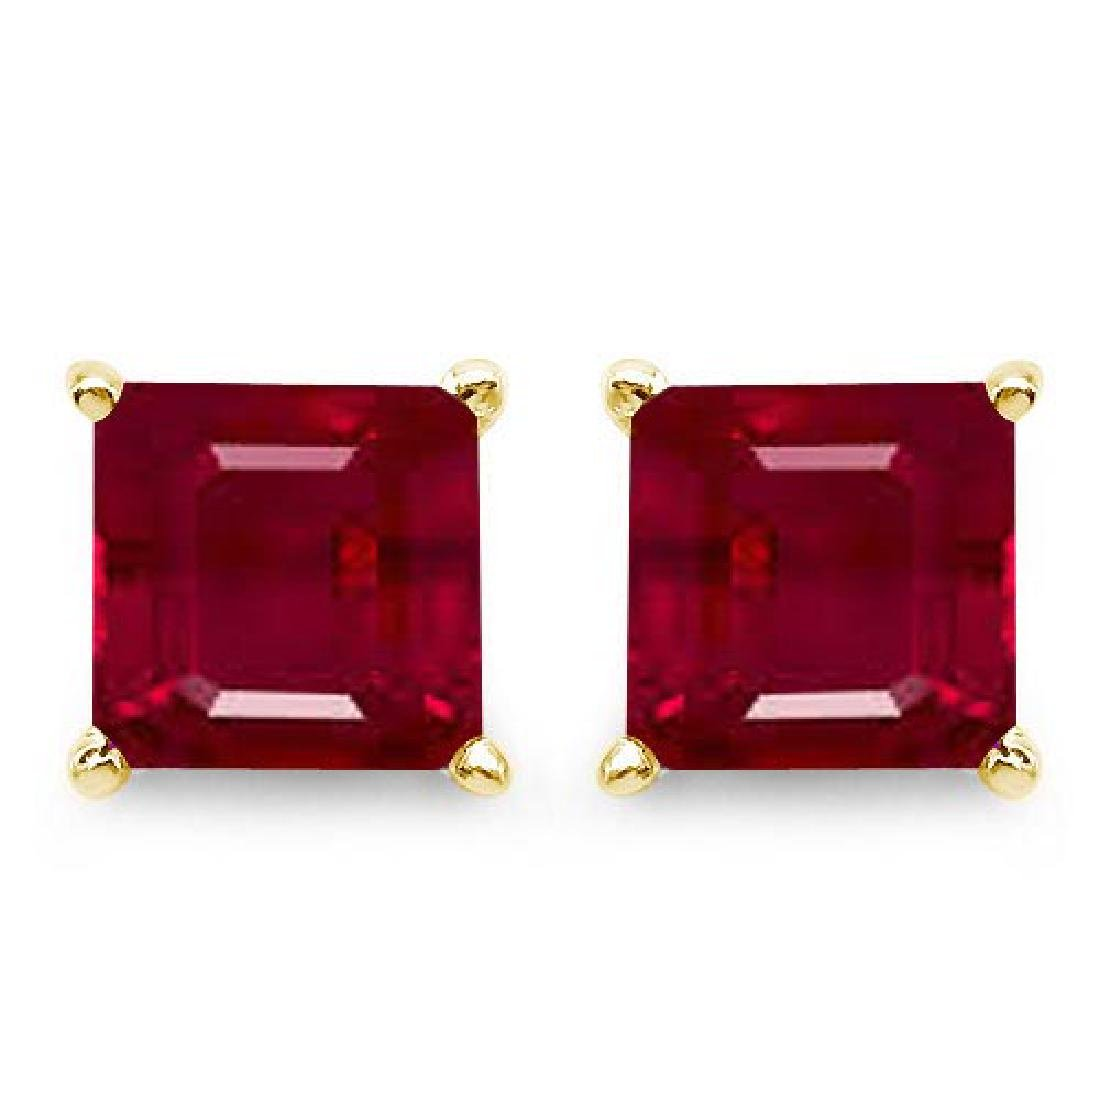 Certified 2.50 CTW Genuine Ruby And 14K Yellow Gold Ear